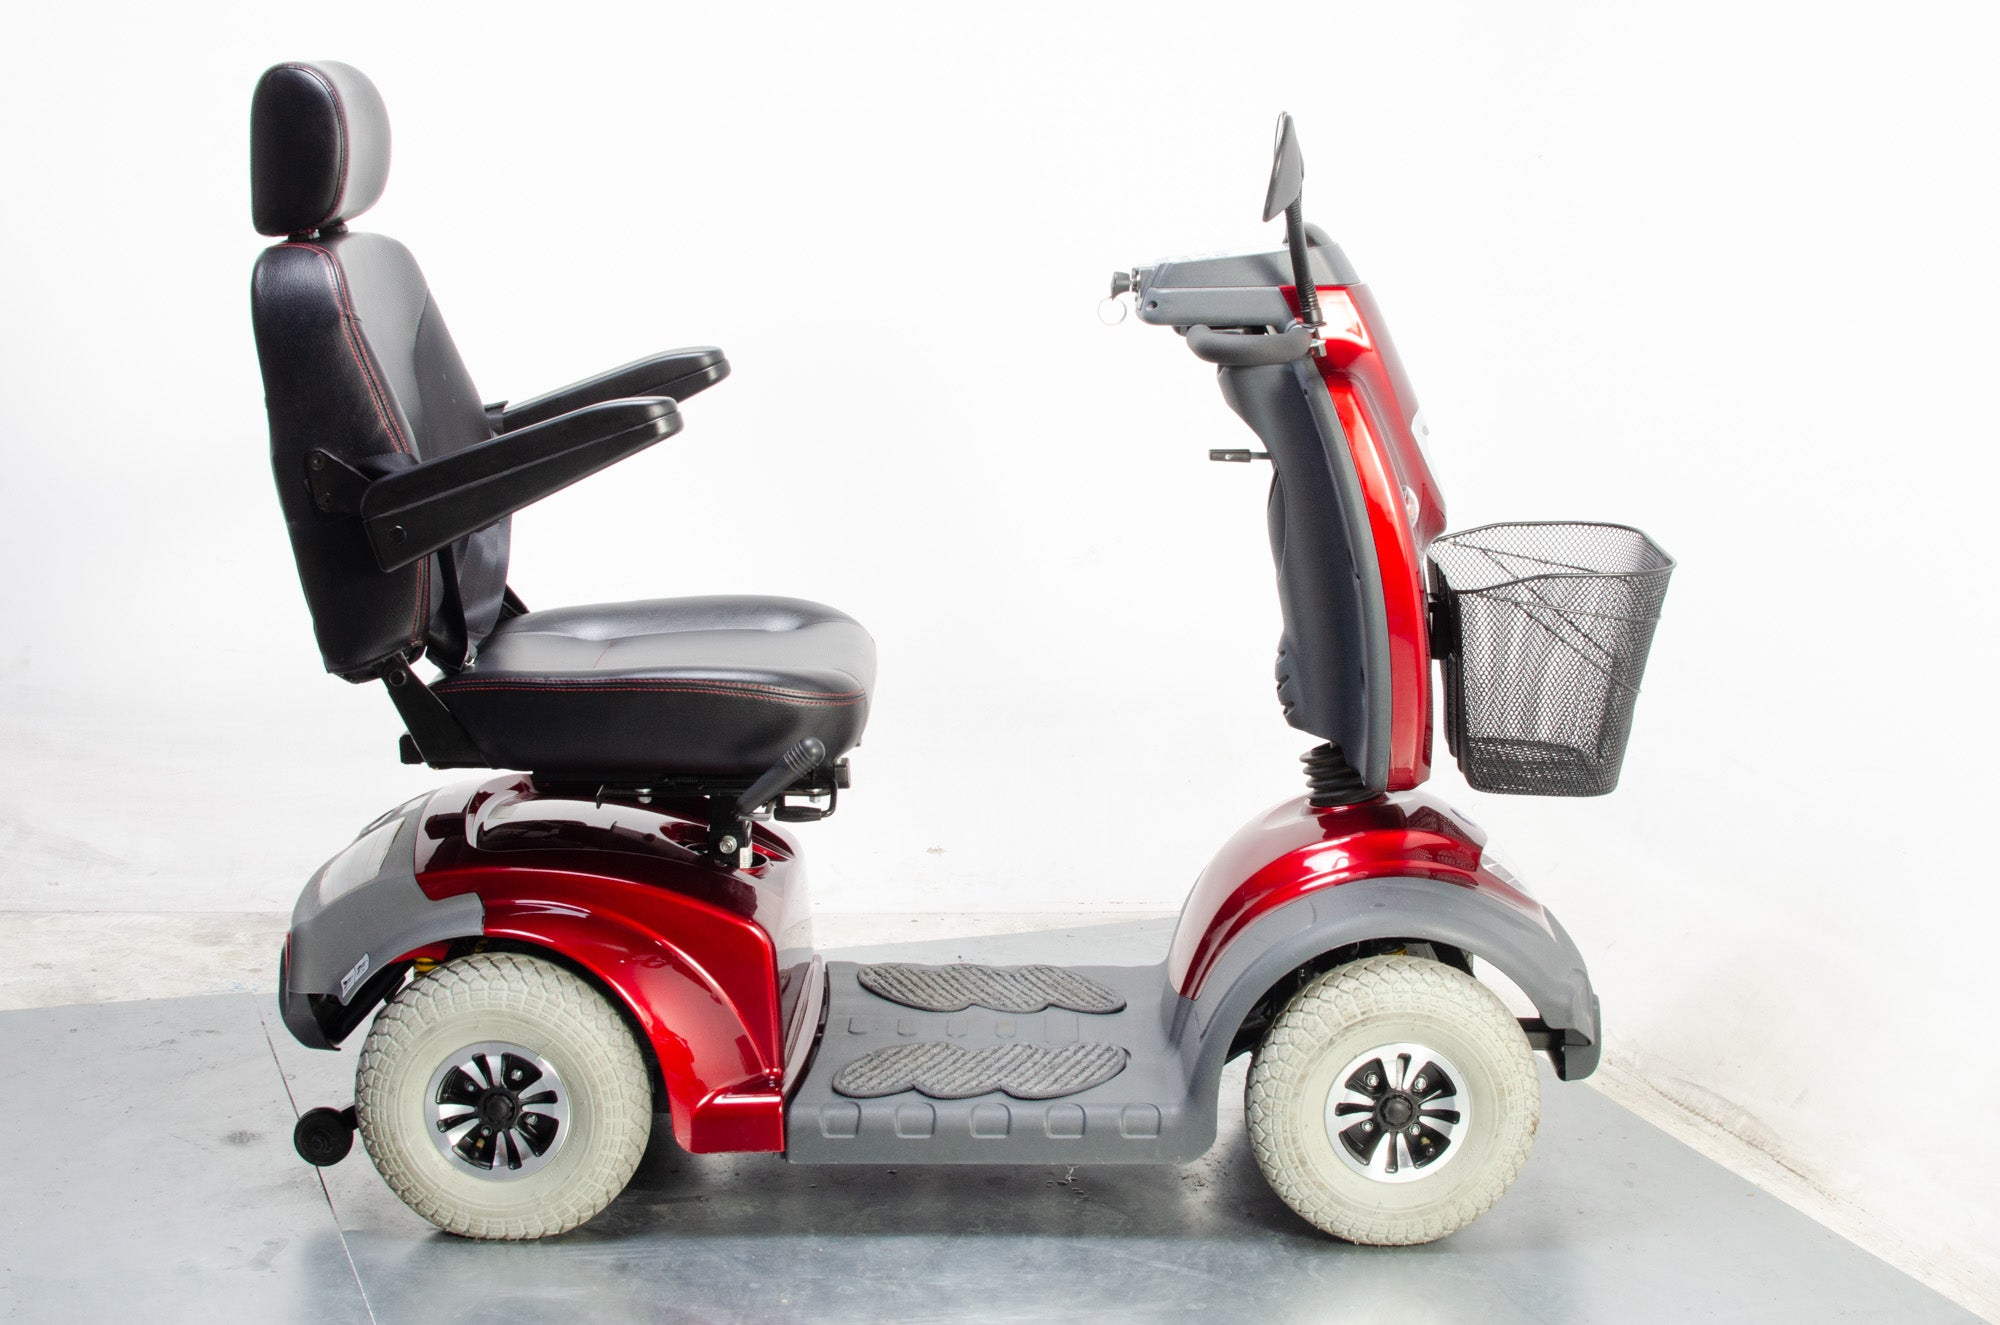 2015 TGA Mystere Electric Mobility Scooter 8mph Mid Size Comfort